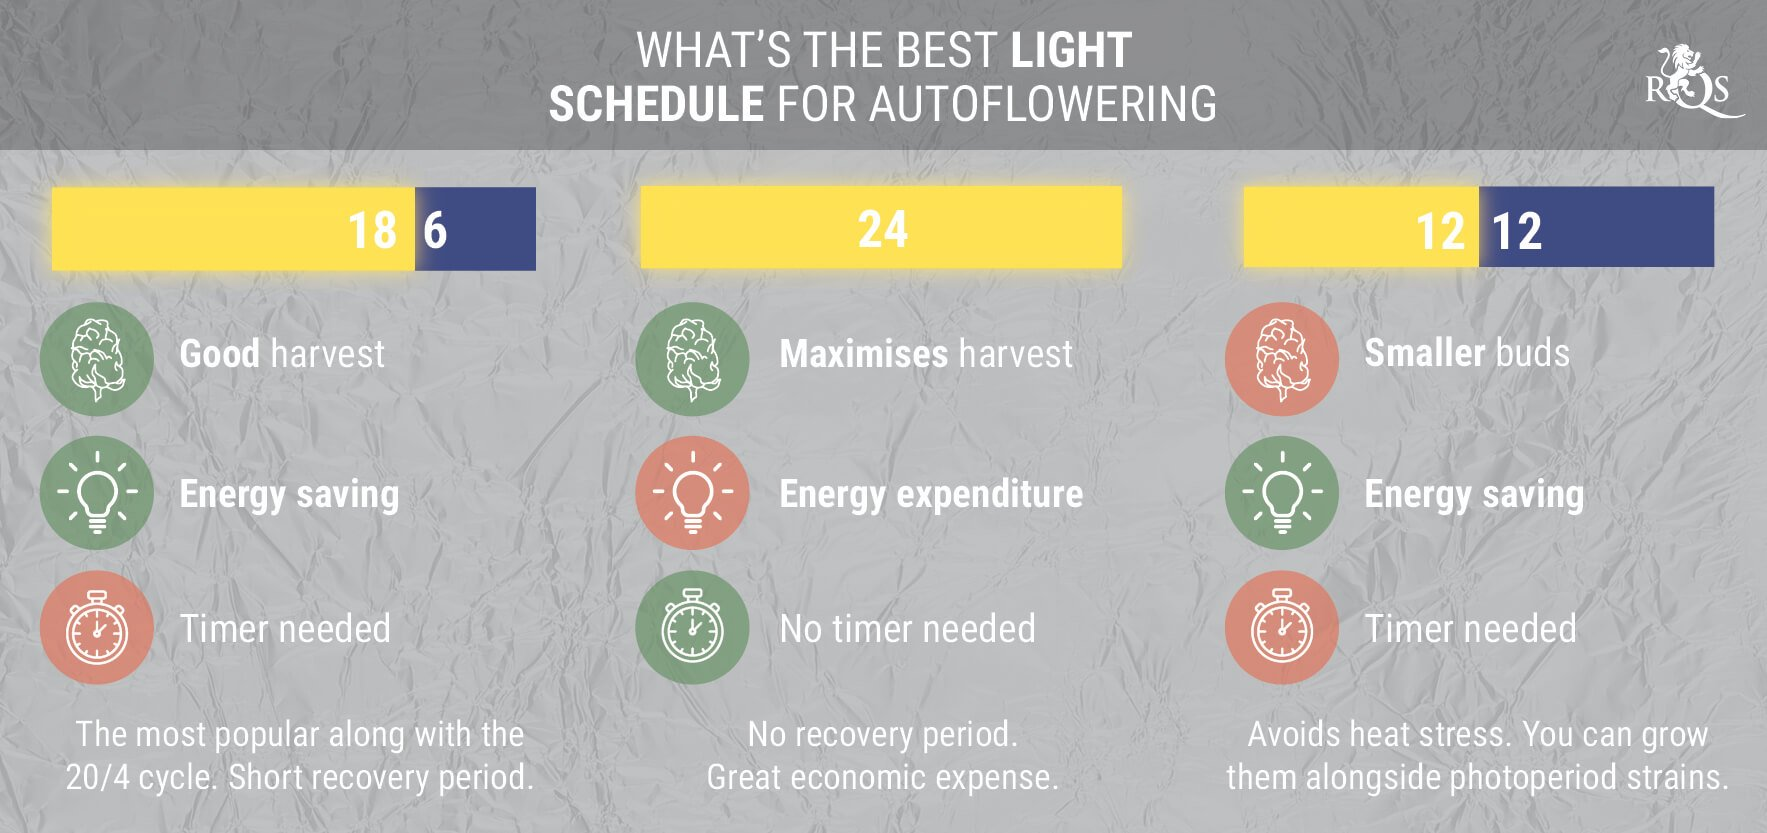 WHAT'S THE BEST LIGHT SCHEDULE FOR AUTOFLOWERING CANNABIS?